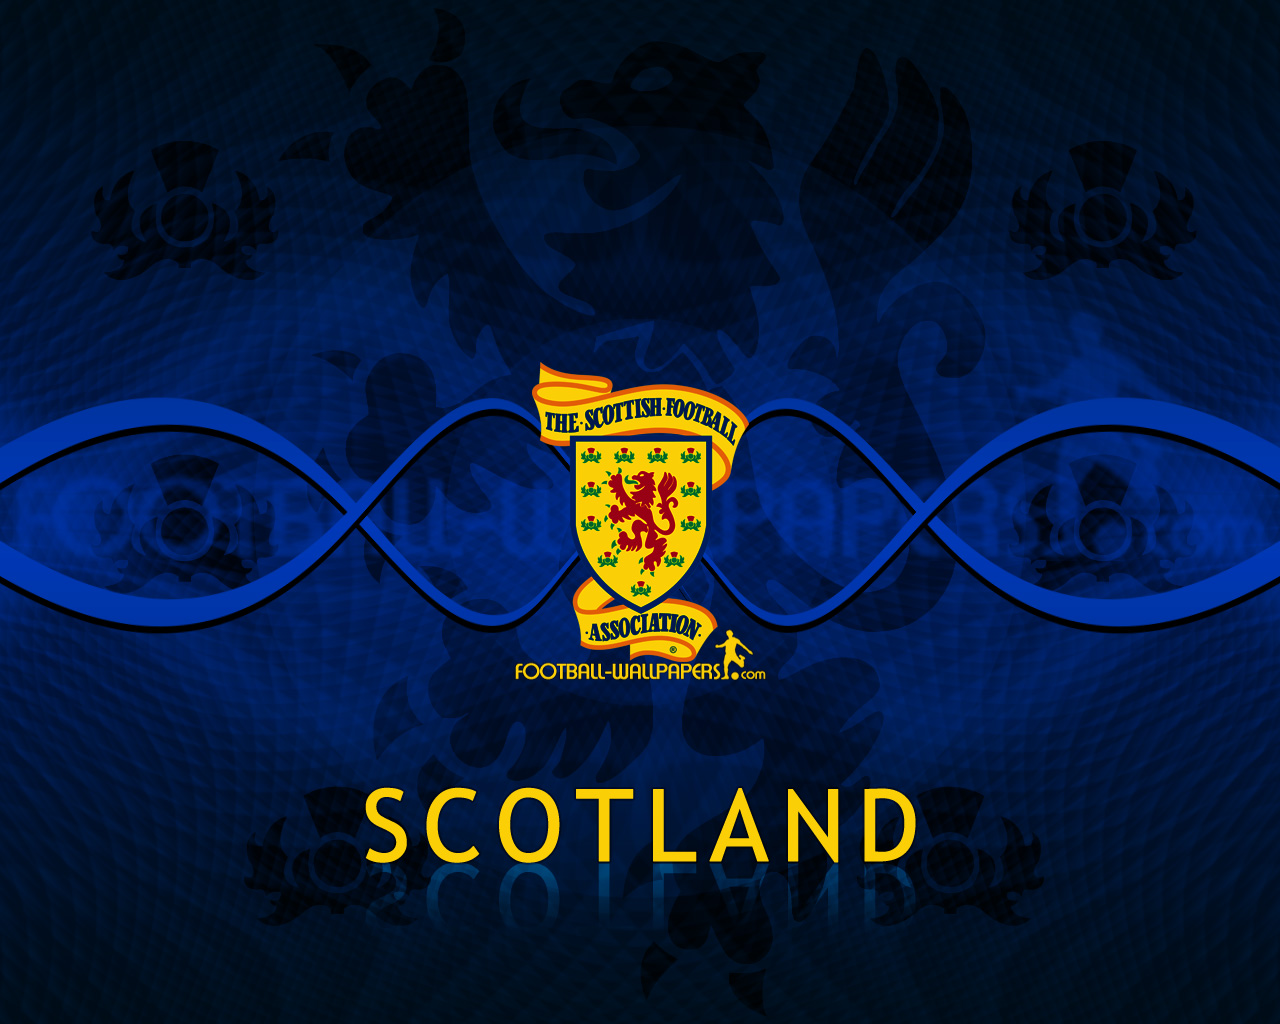 Scotland National Team Wallpaper 2 Football Wallpapers 1280x1024